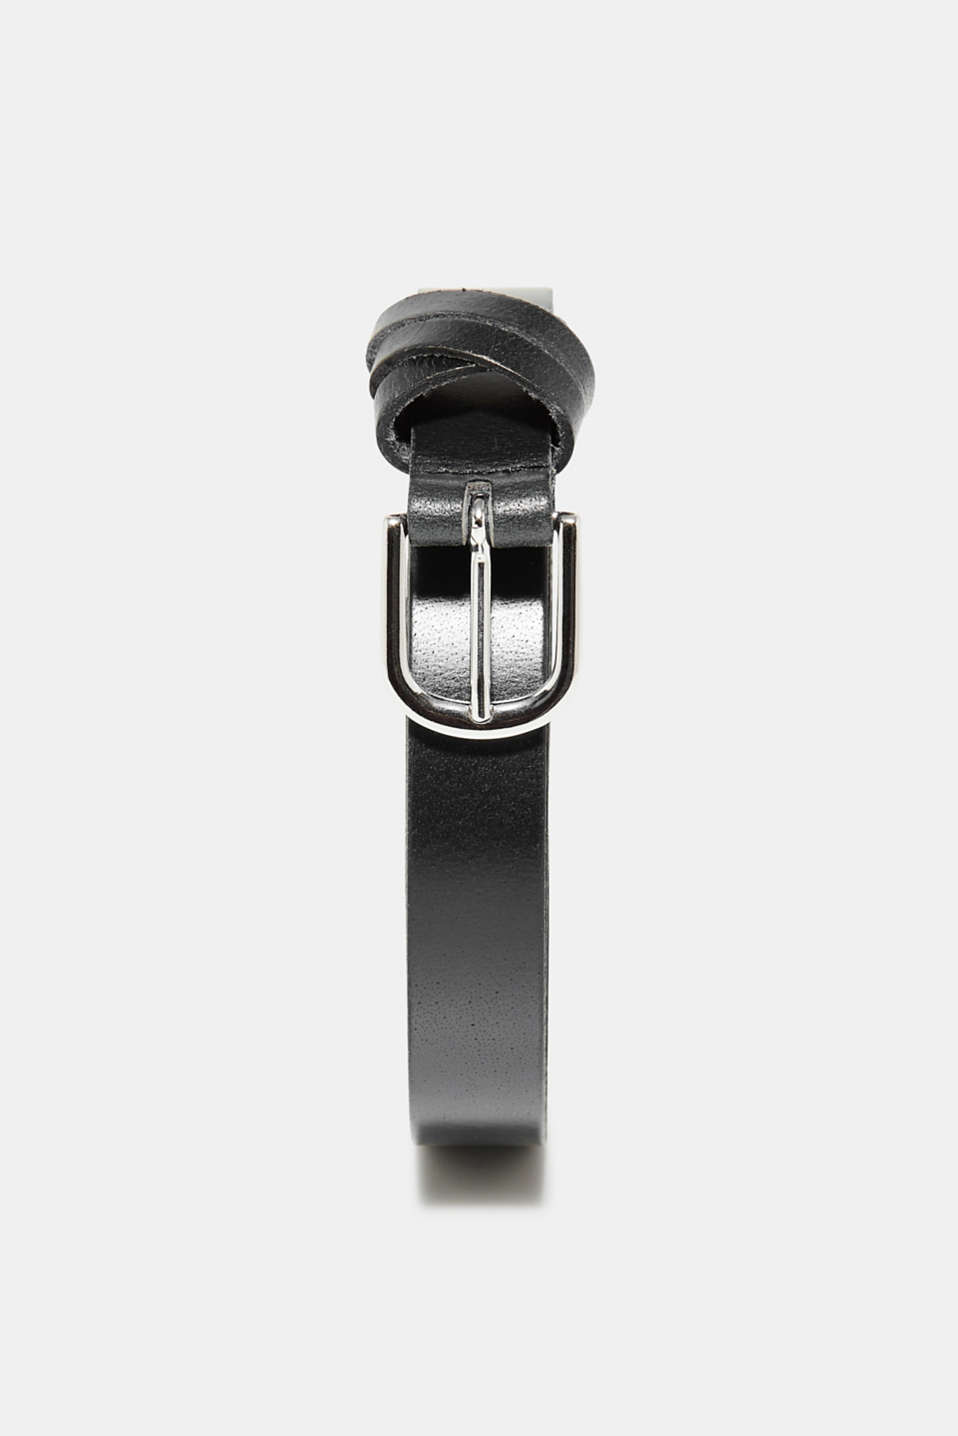 The crossed-over leather loops make this 100% buffalo leather belt fashionably eye-catching.